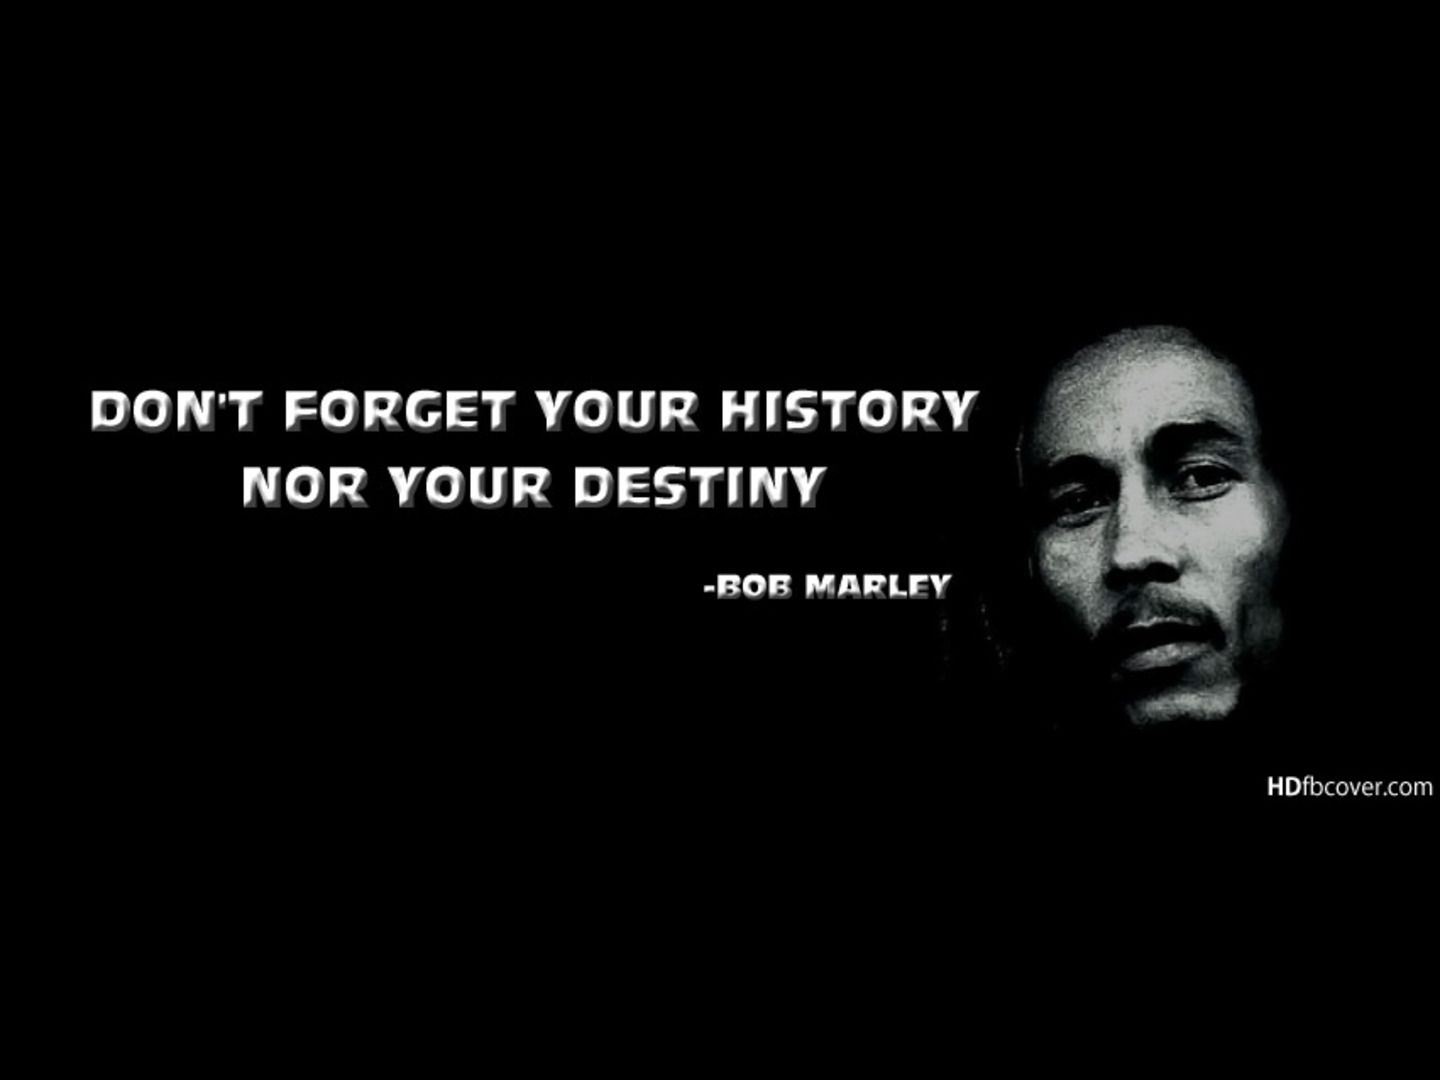 sad love quotes of bob marley Quotes For Bob Marley Quotes About Weed And Alcohol